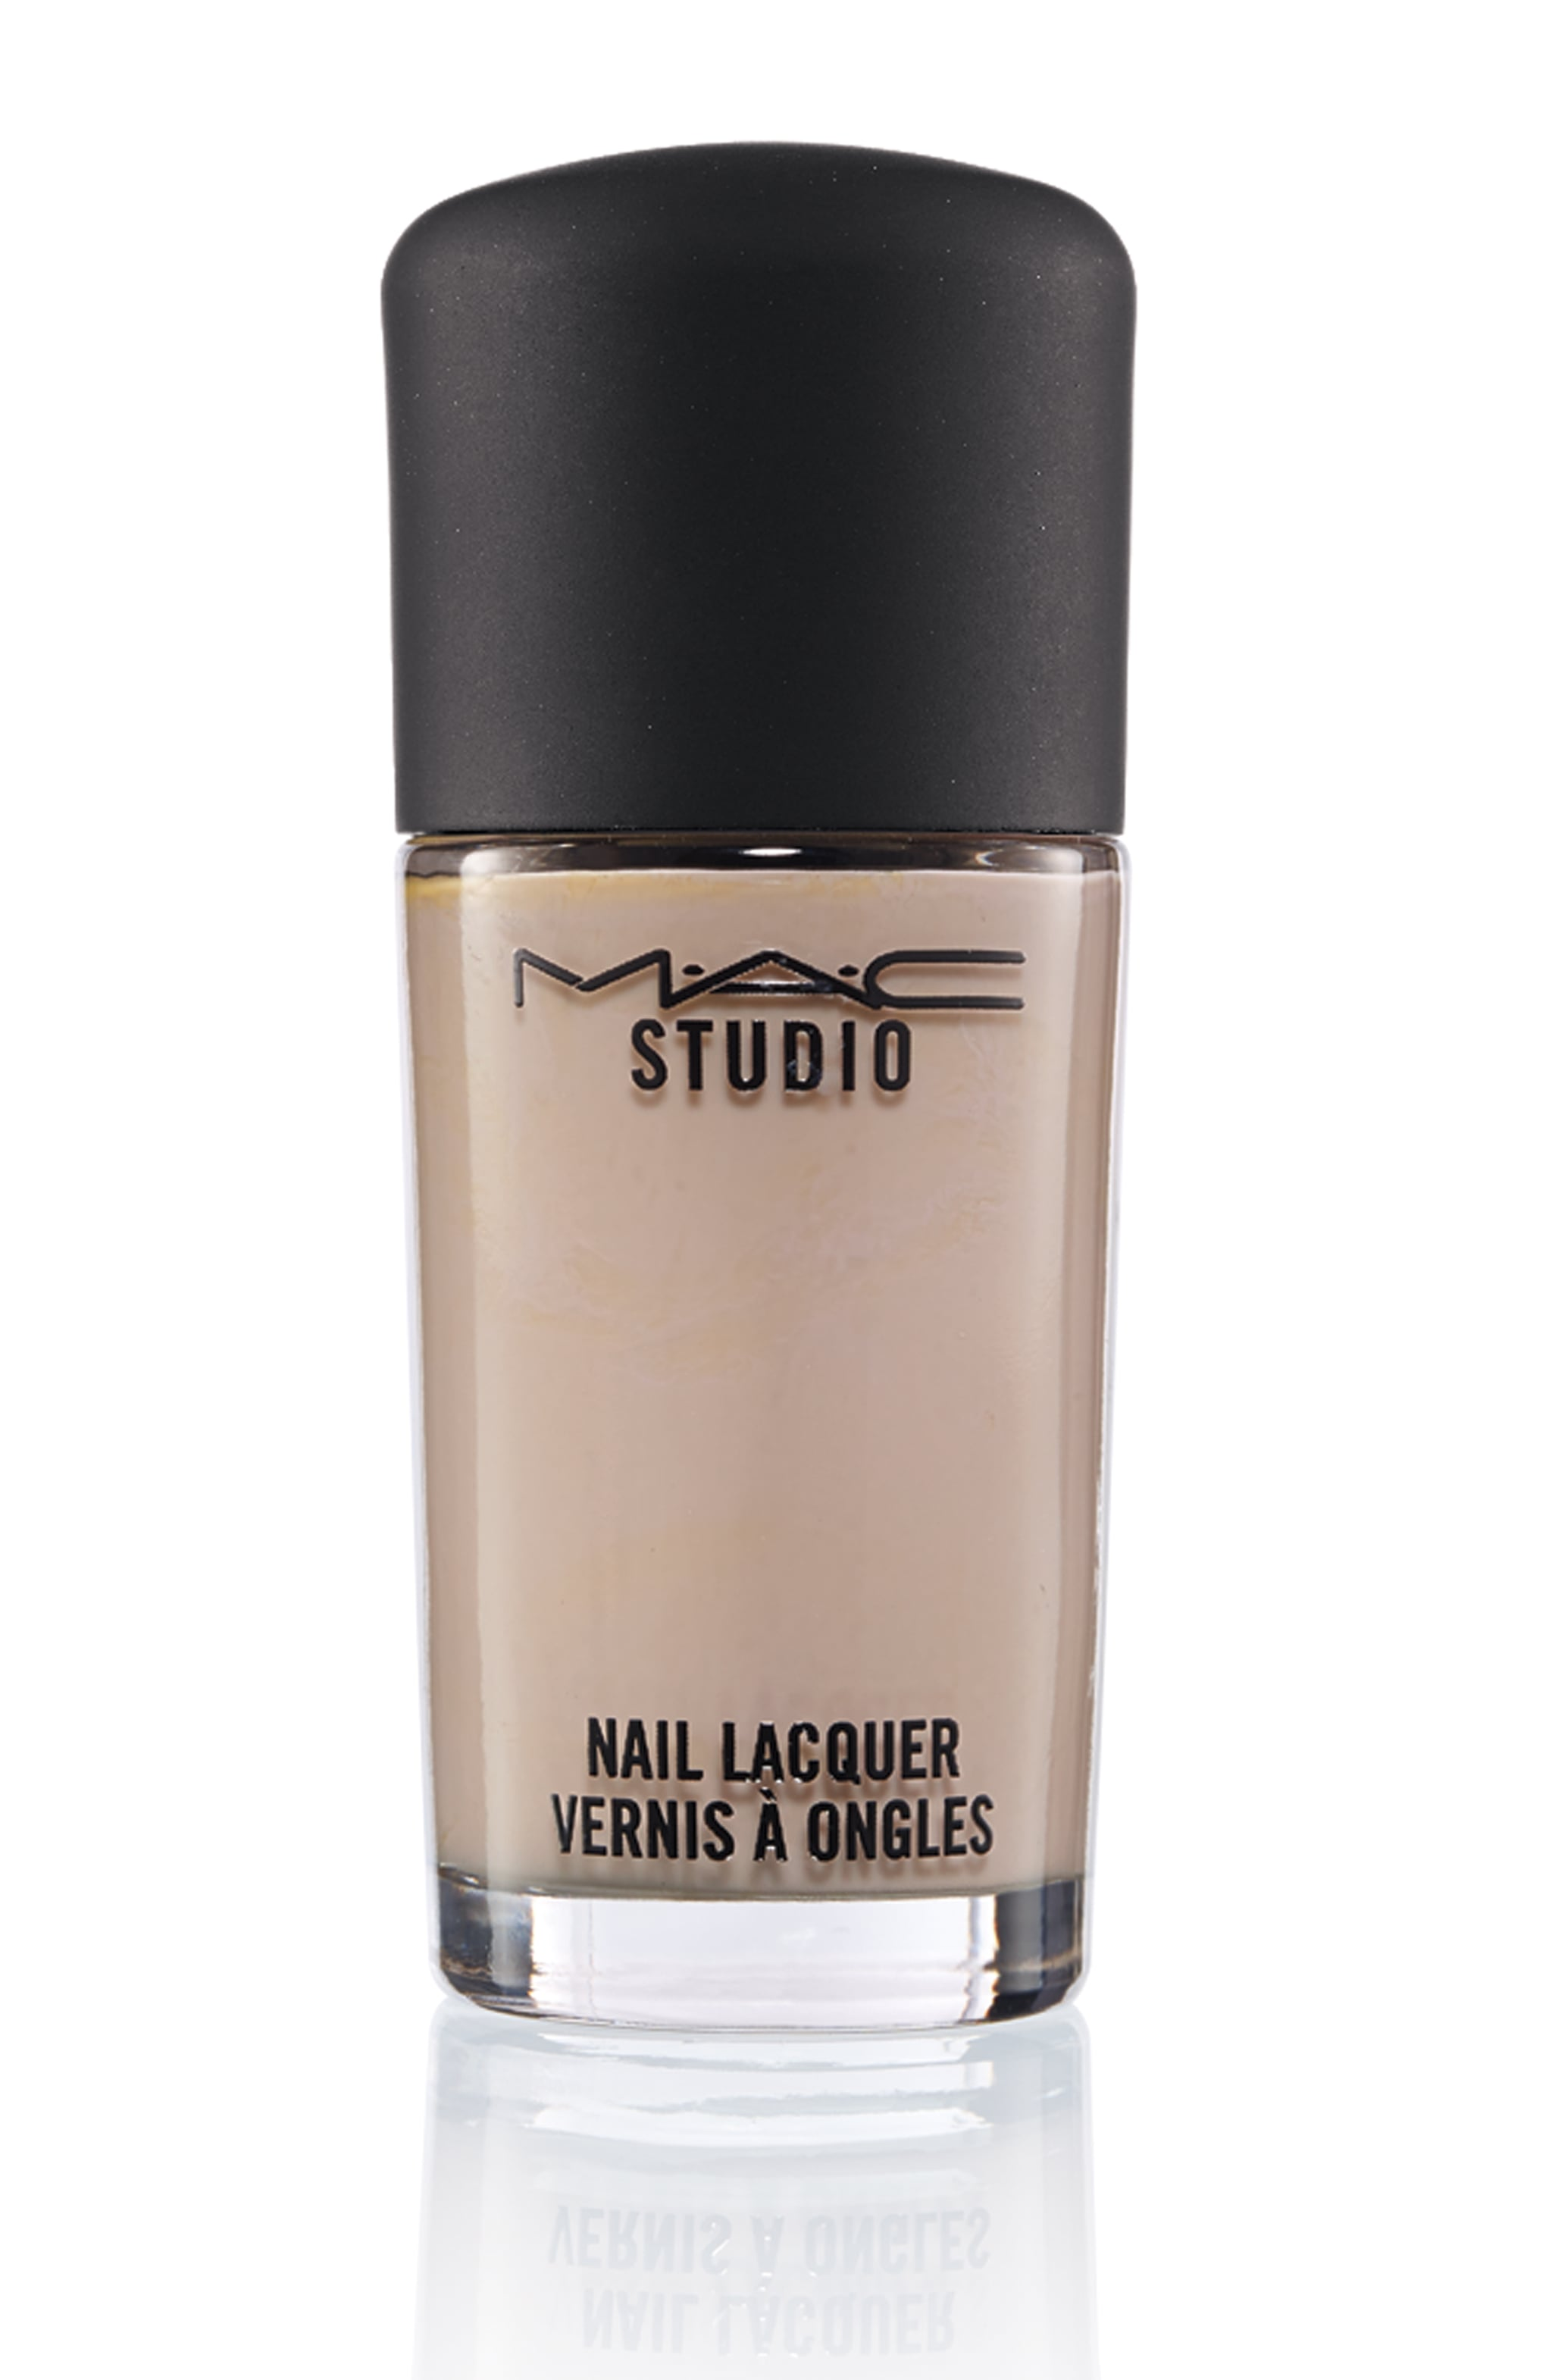 MAC Studio Nail Lacquer in Quiet Time ($12)